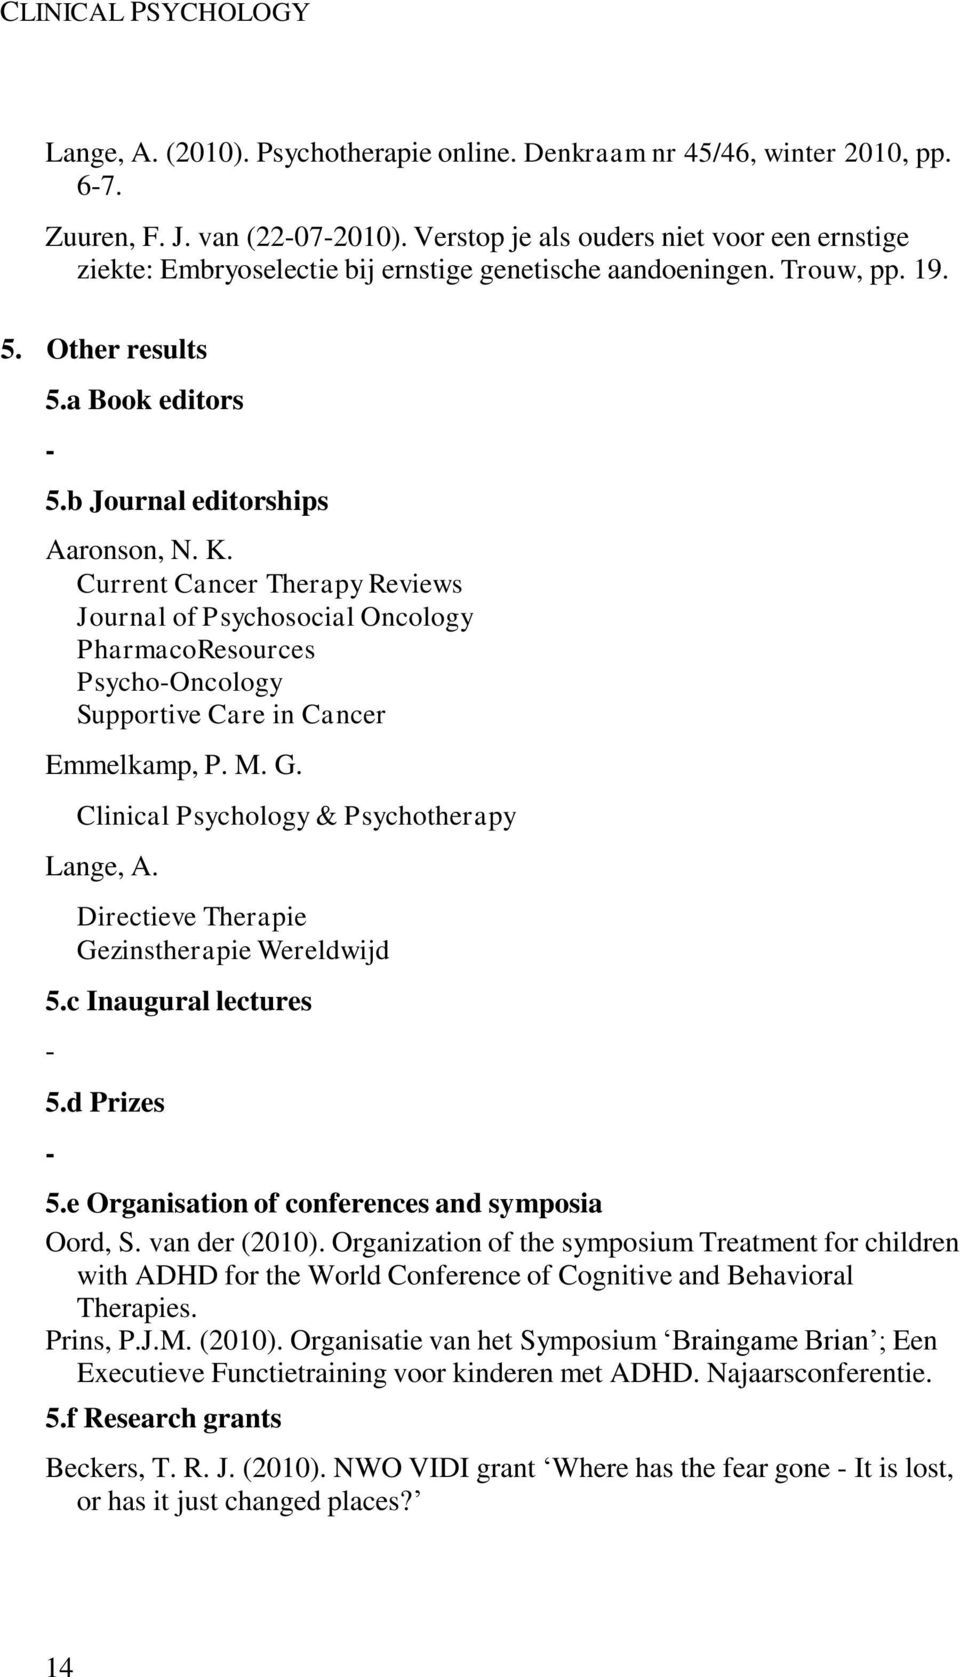 Current Cancer Therapy Reviews Journal of Psychosocial Oncology PharmacoResources Psycho-Oncology Supportive Care in Cancer Emmelkamp, P. M. G. Clinical Psychology & Psychotherapy Lange, A.